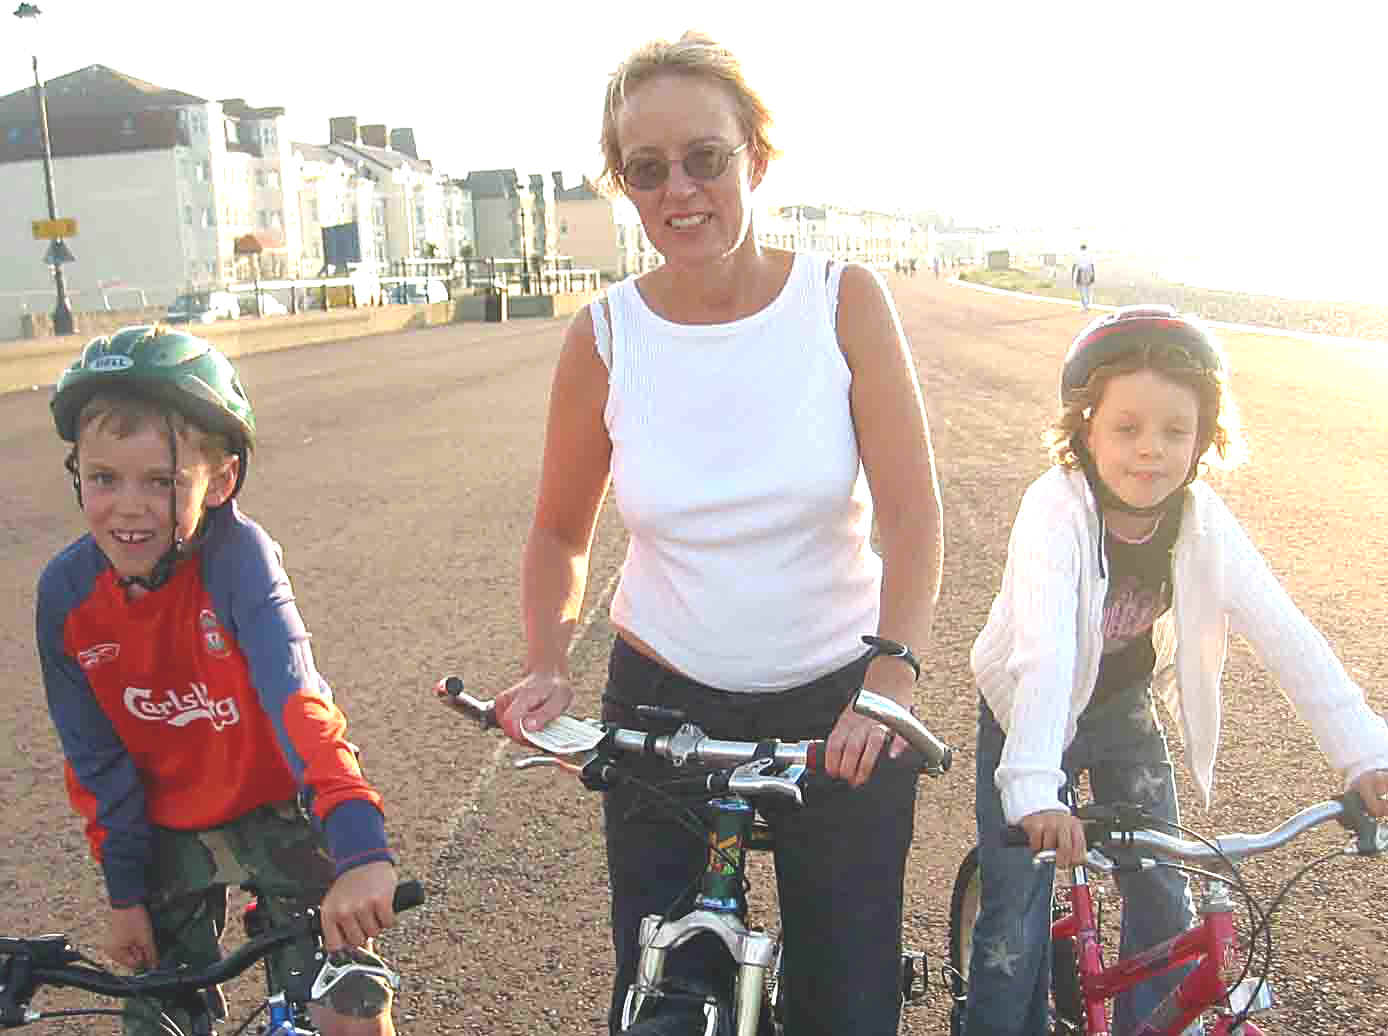 Mother and two young children on Llandudno promenade